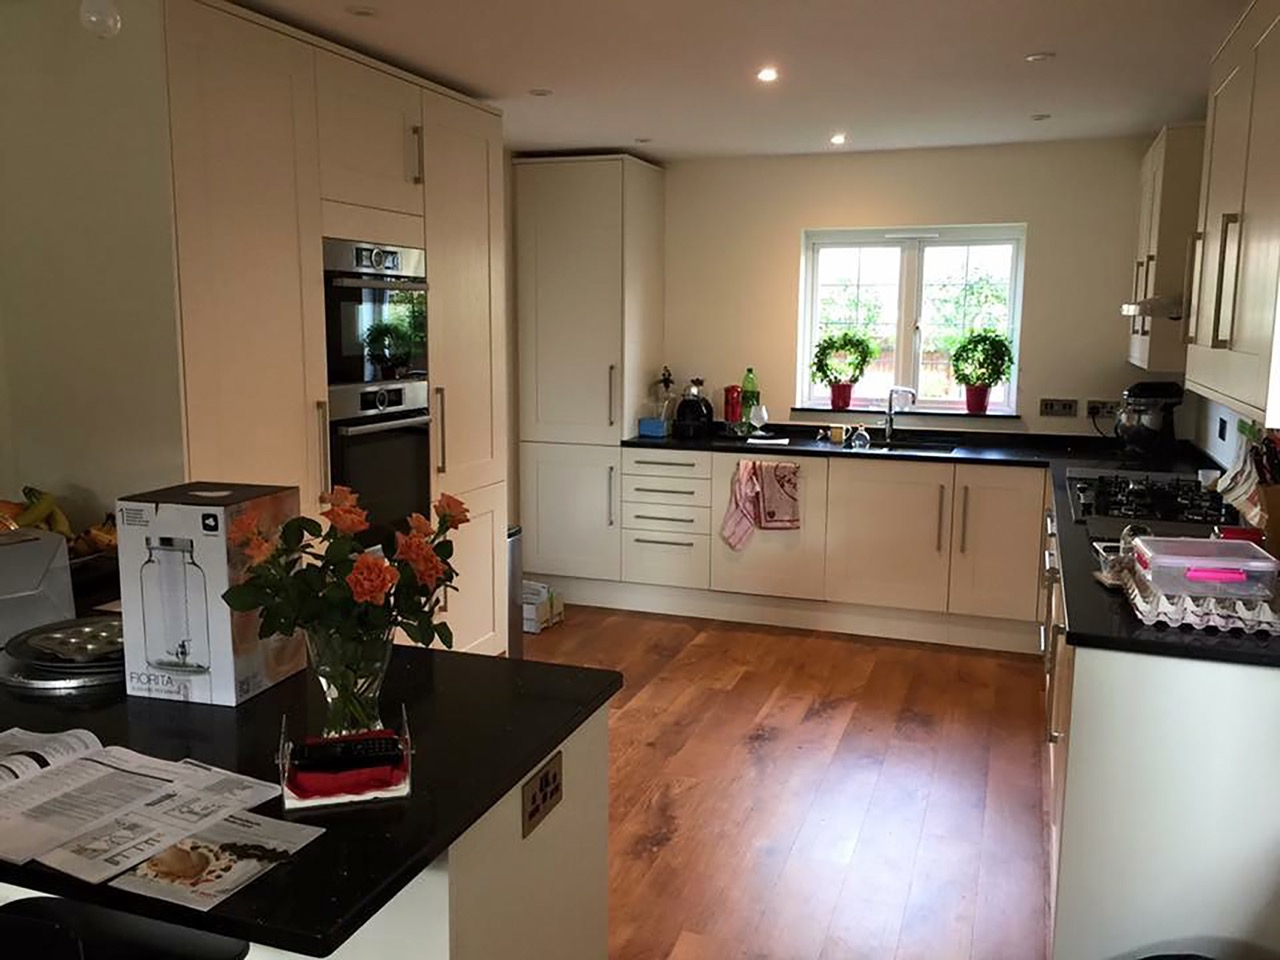 stuart-heather-carpentry-joinery-sussex-surrey-1